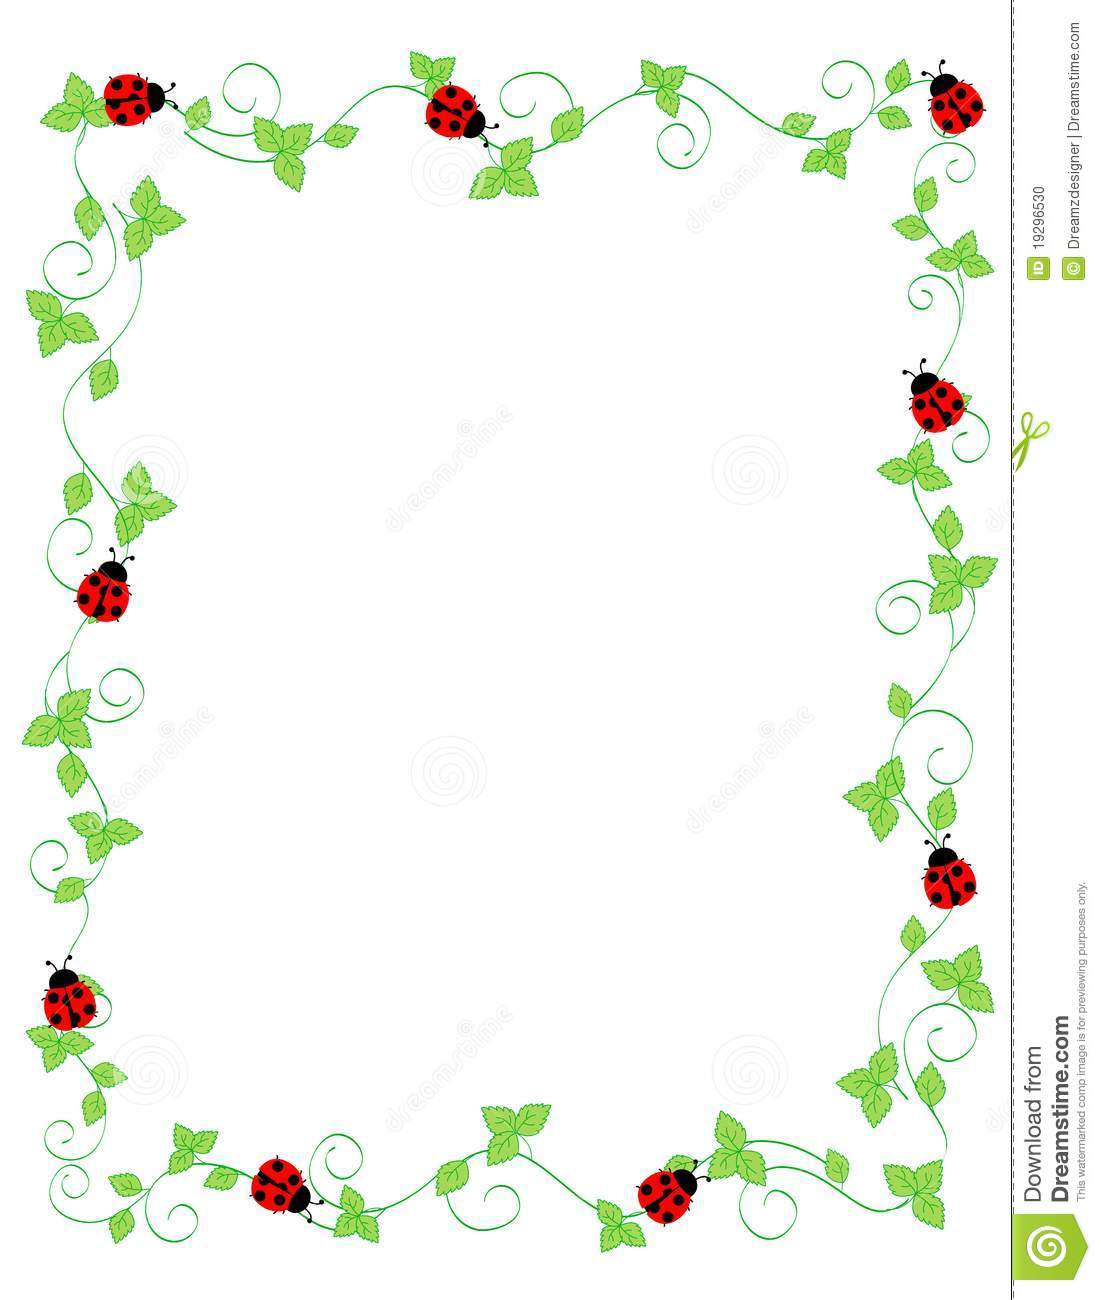 Cute colorful ladybugs frame on white background.